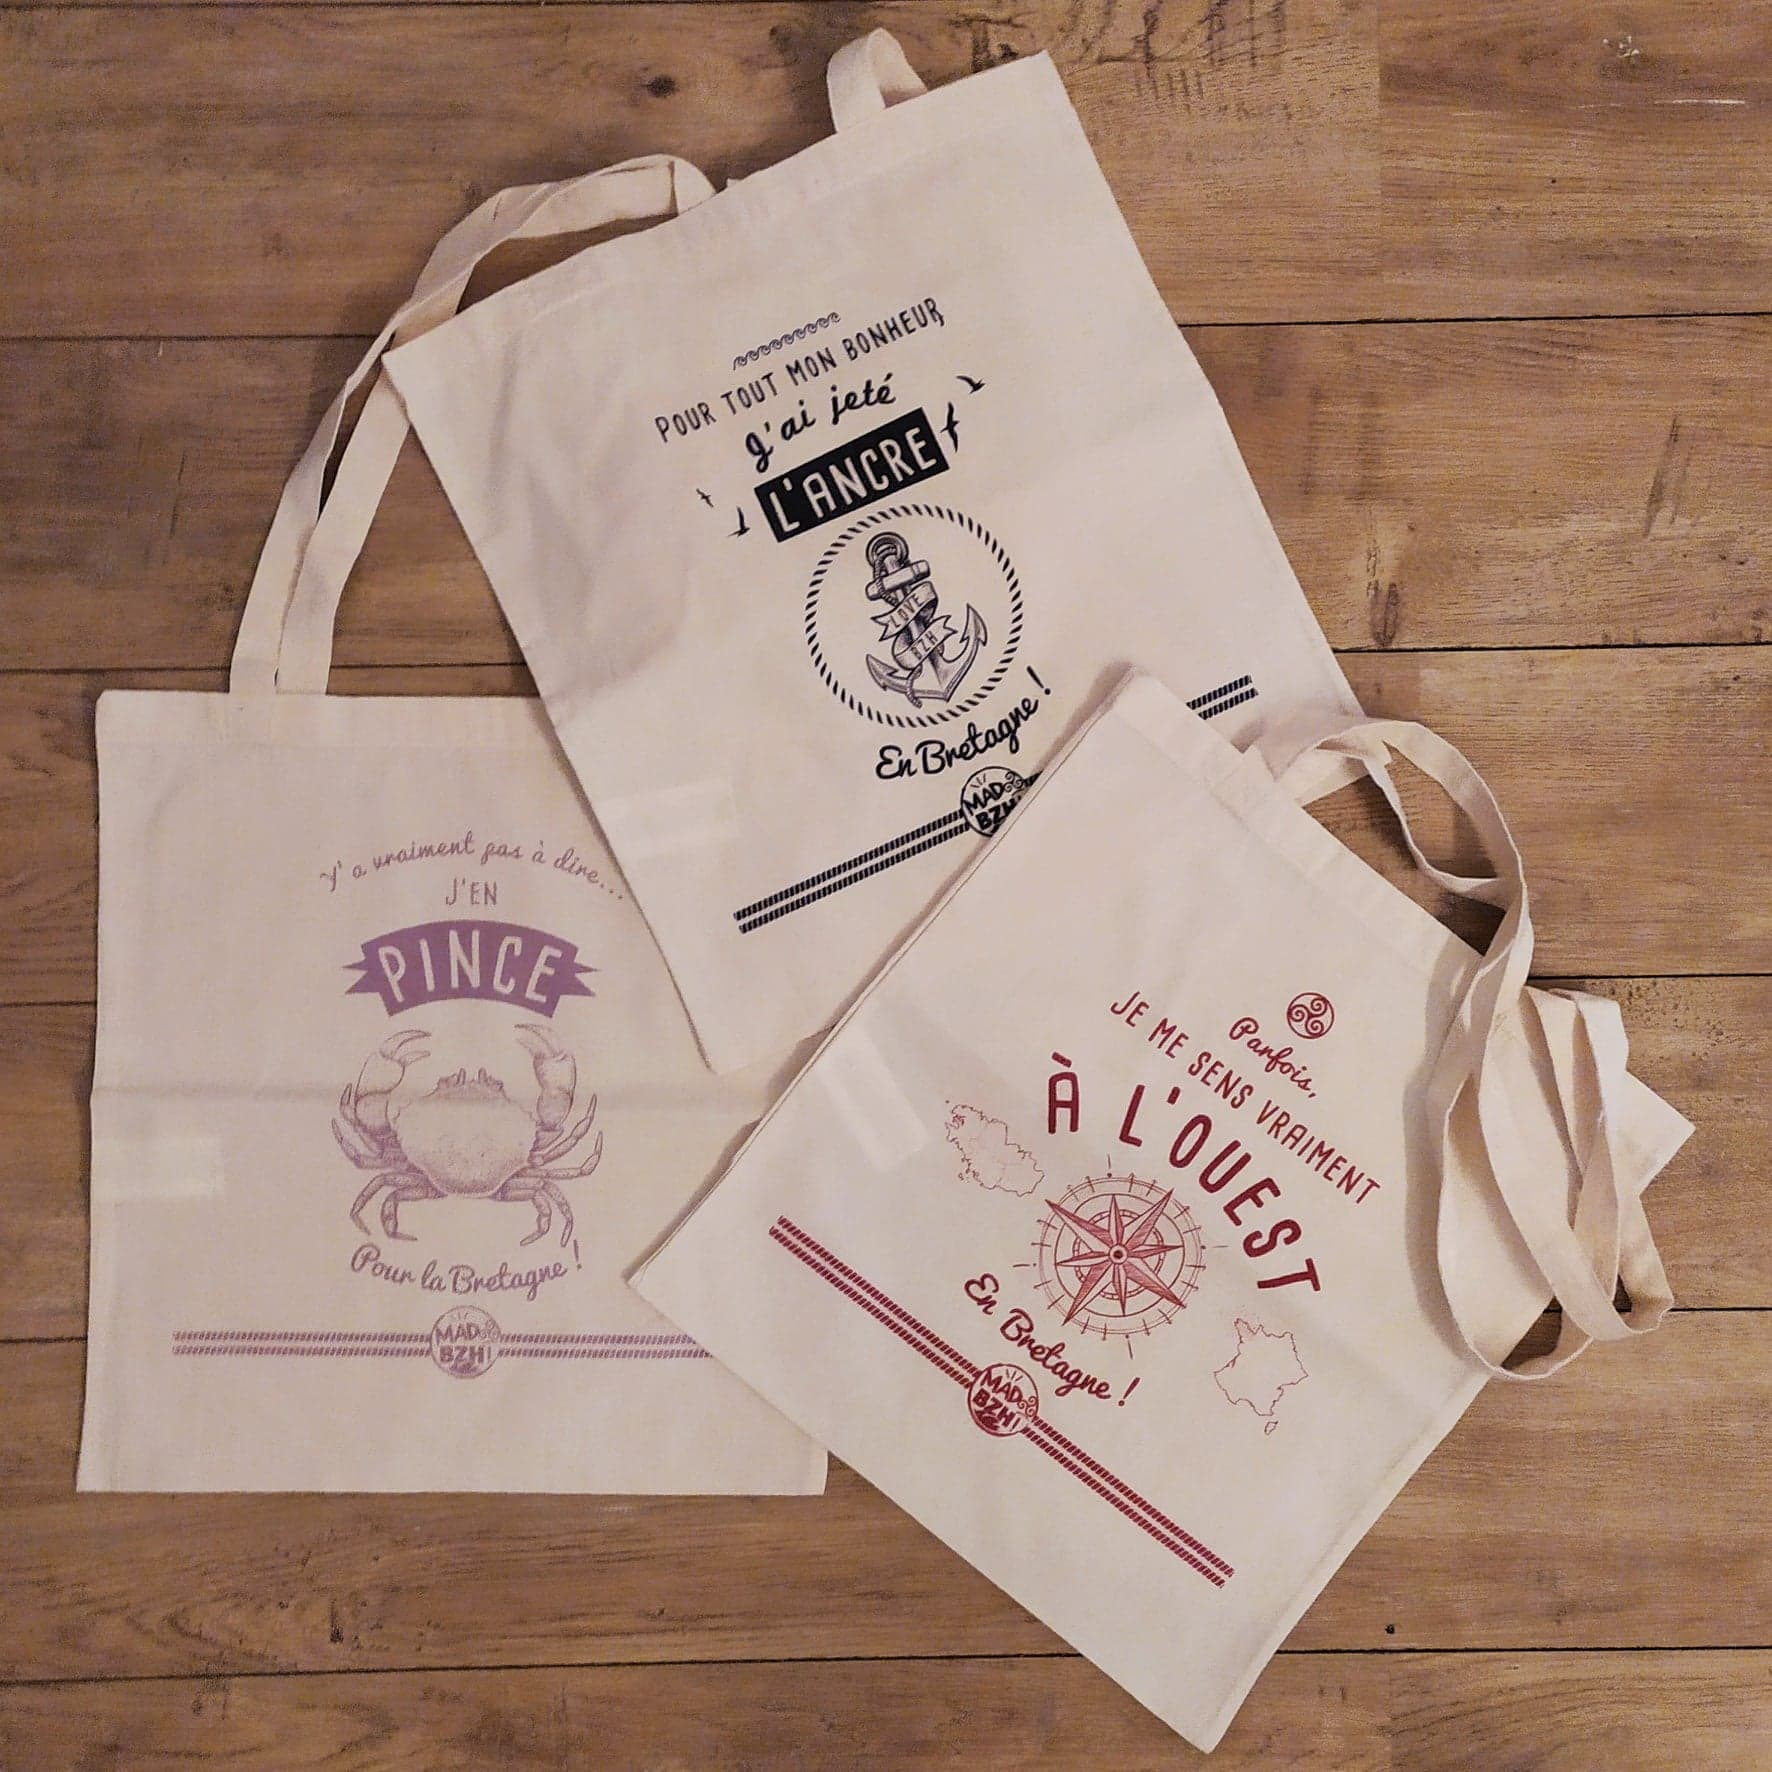 La collection de tote bags MAD BZH